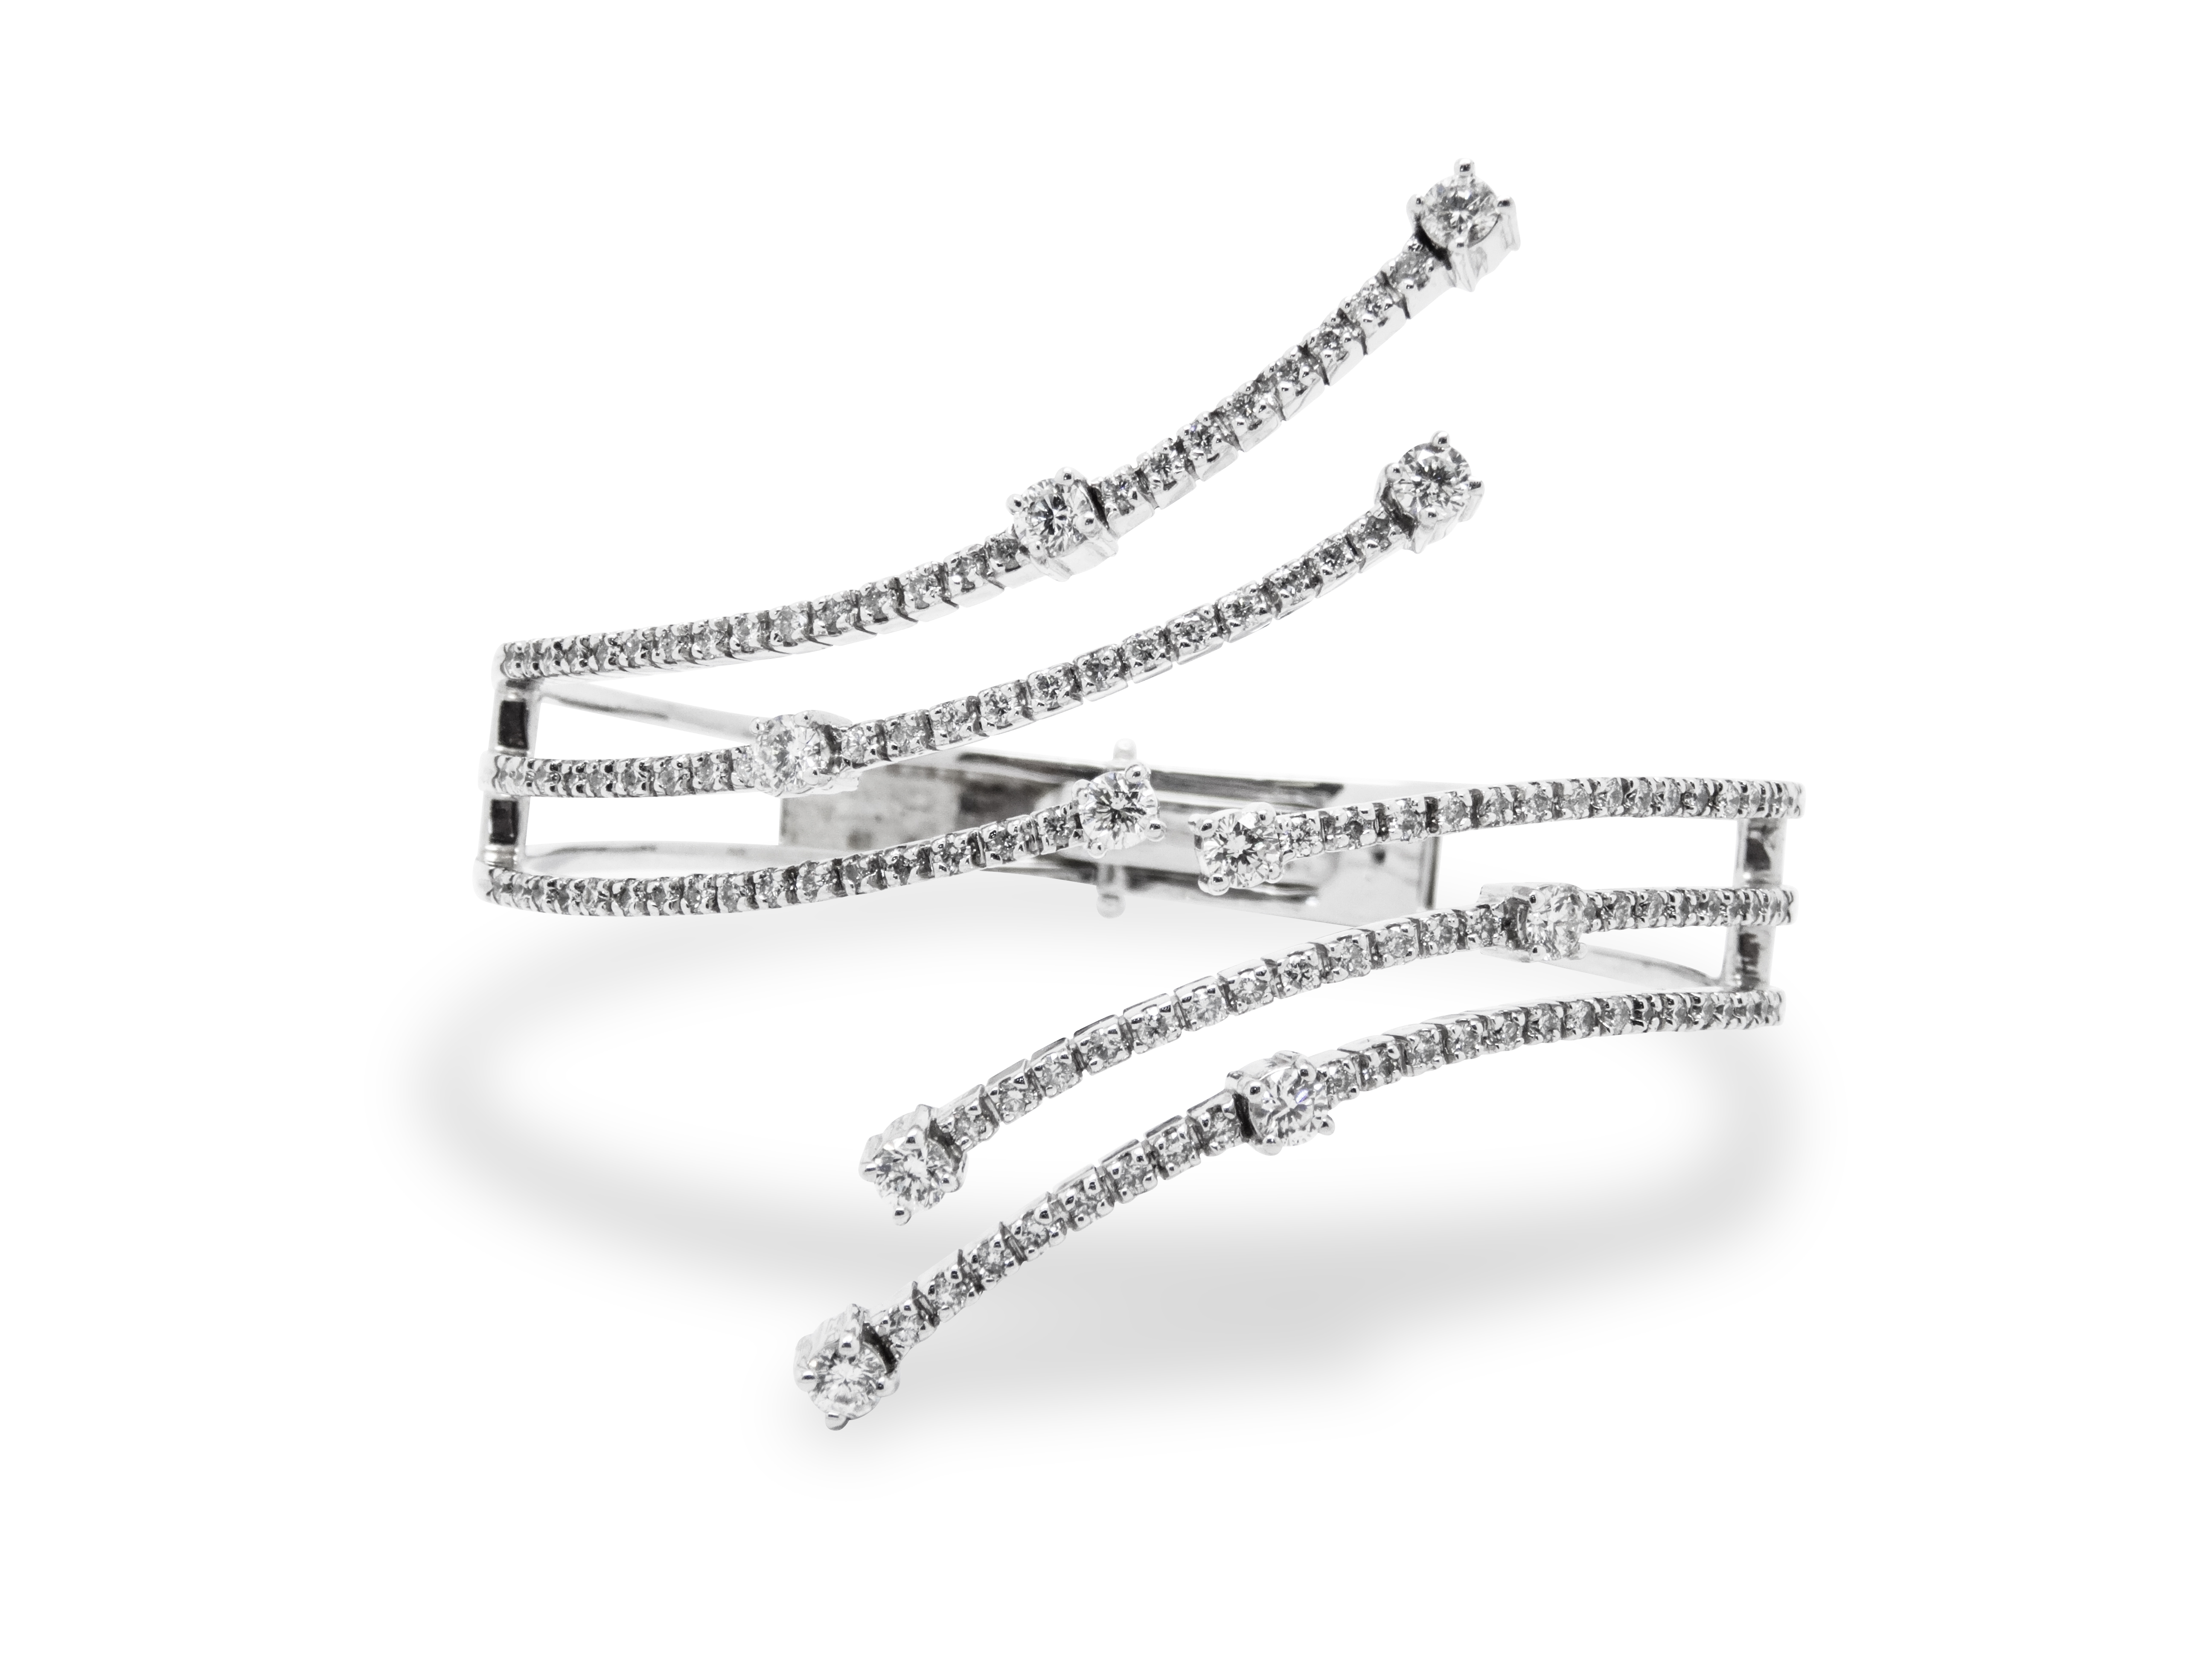 14k white gold bracelet with 2.86ct of diamonds